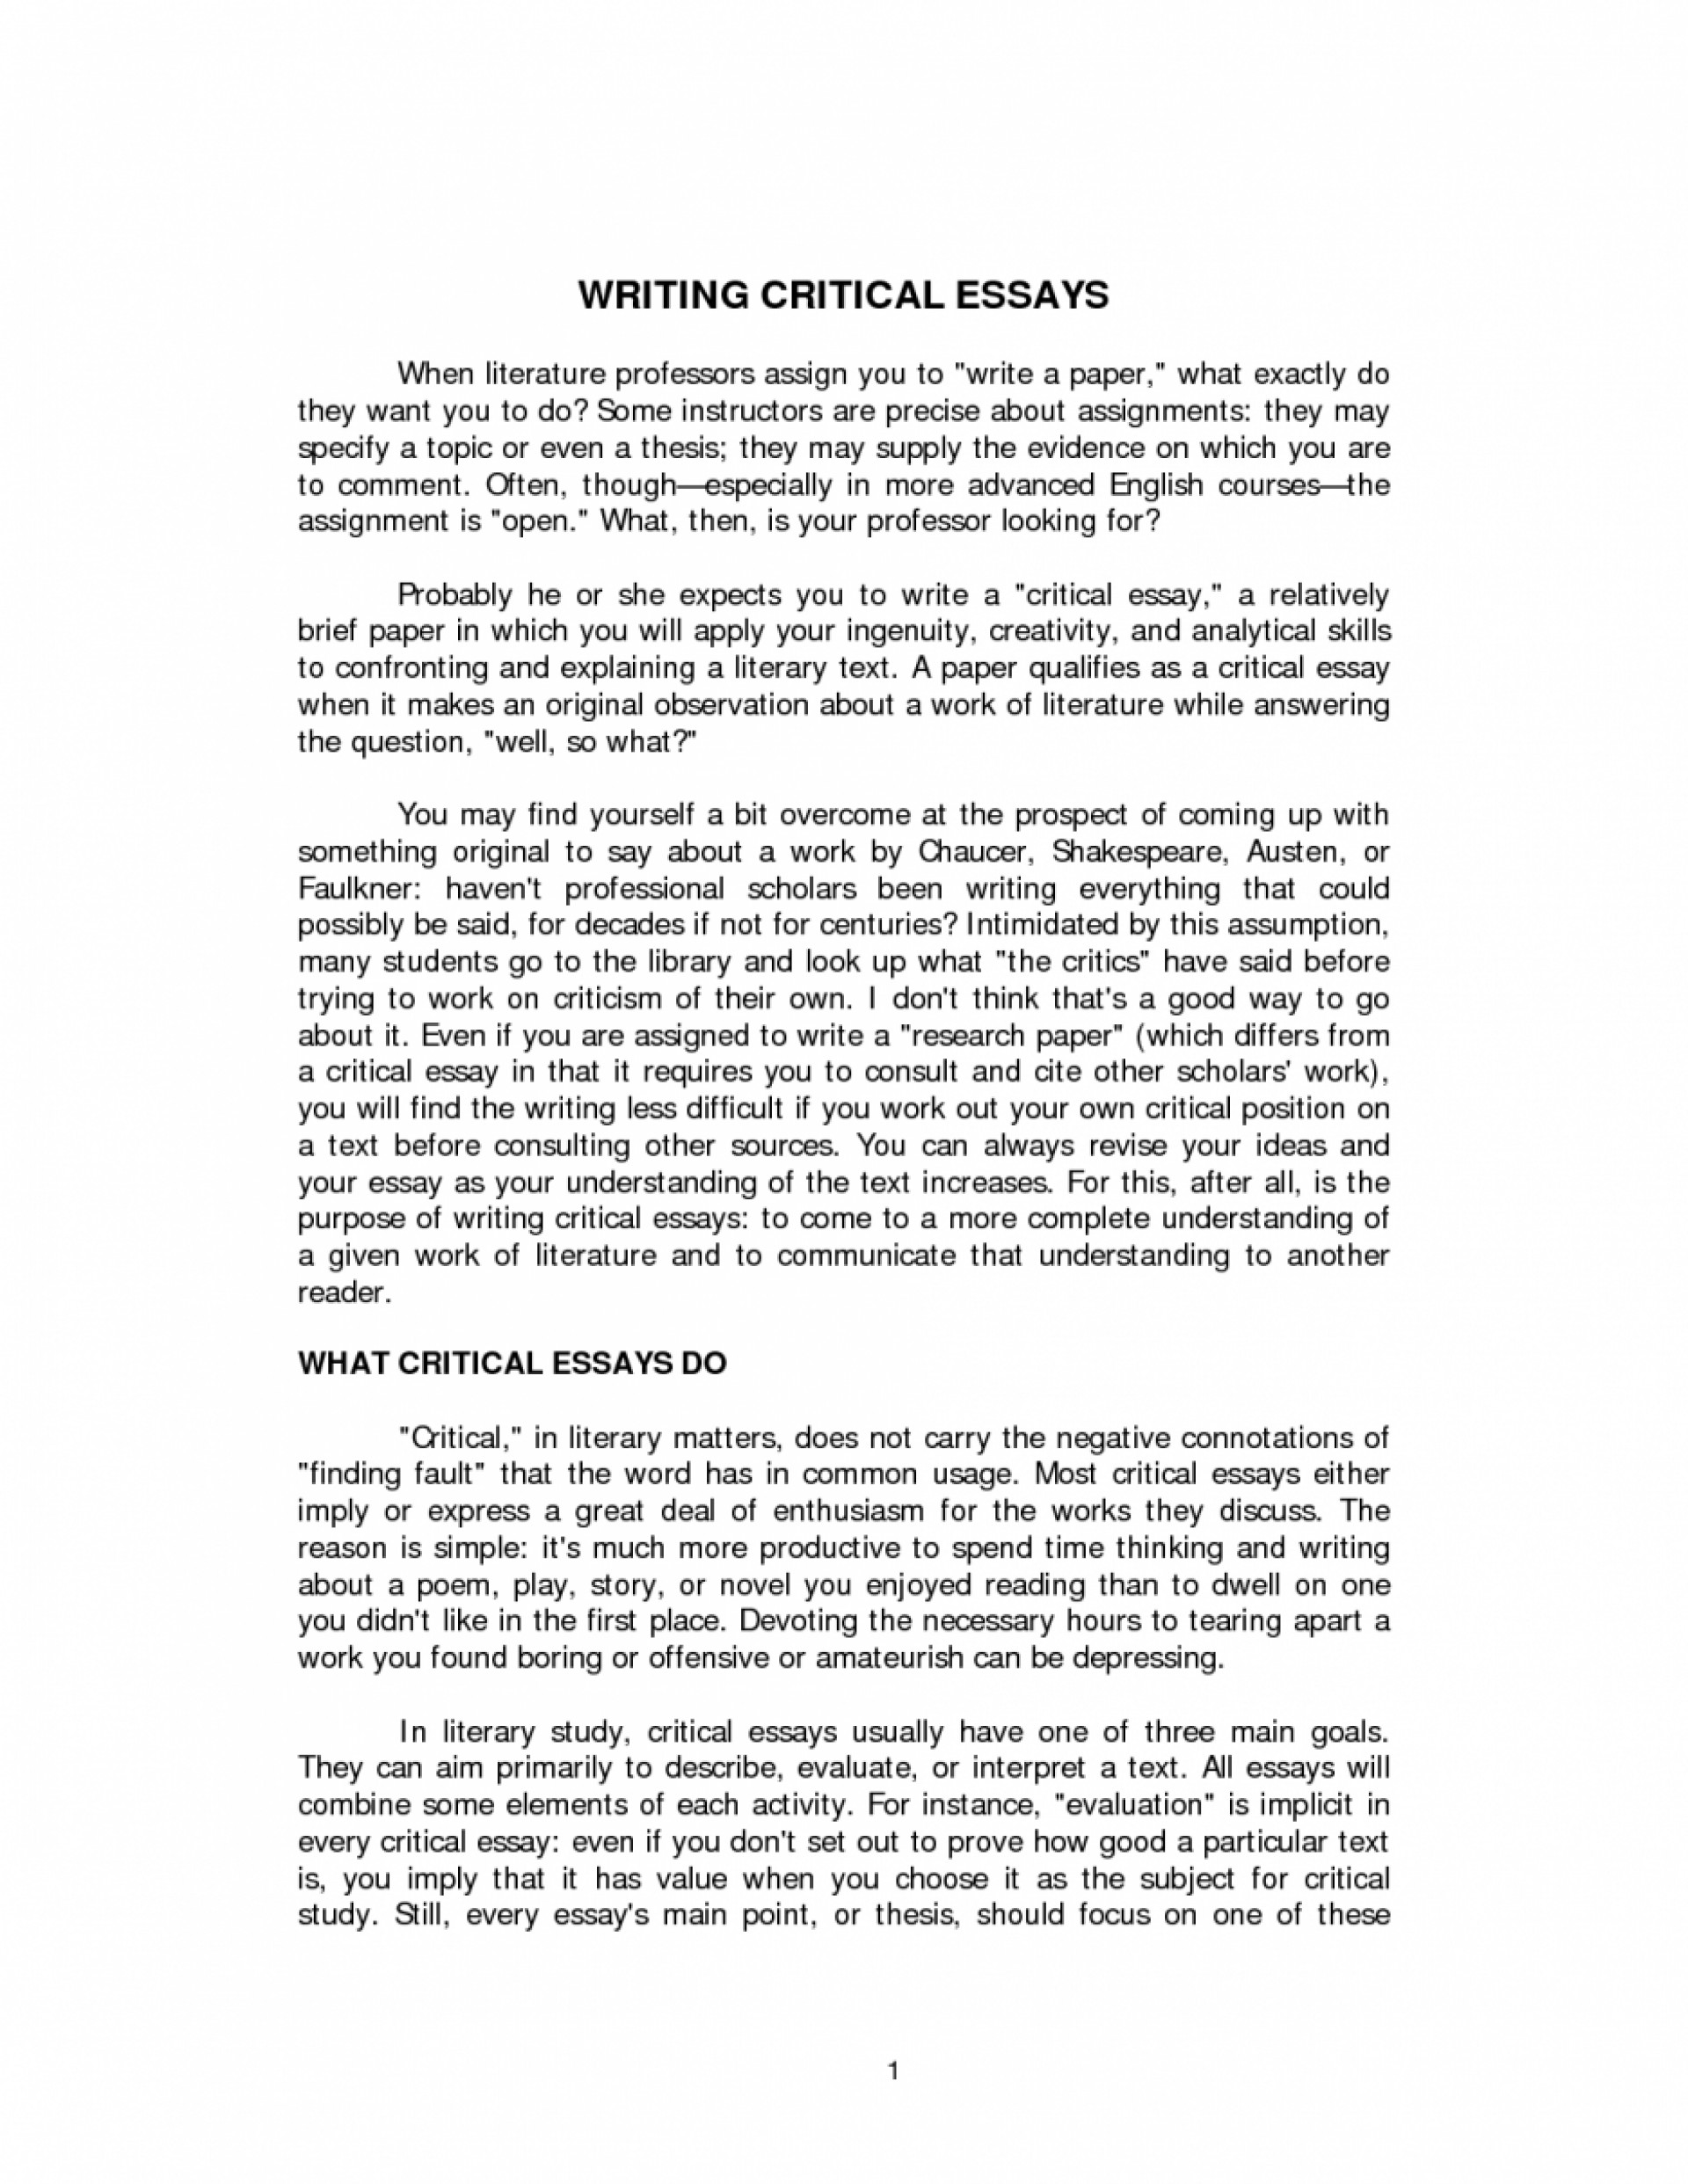 014 Help Writing Descriptive Essay Nxcpjzbtuh Example Of In Gonder About Person Examples For High School Discriptive Words Place Pdf Love The Beach An Event Nature My Mother Amazing Essays 5 Paragraphs Sample A 1920